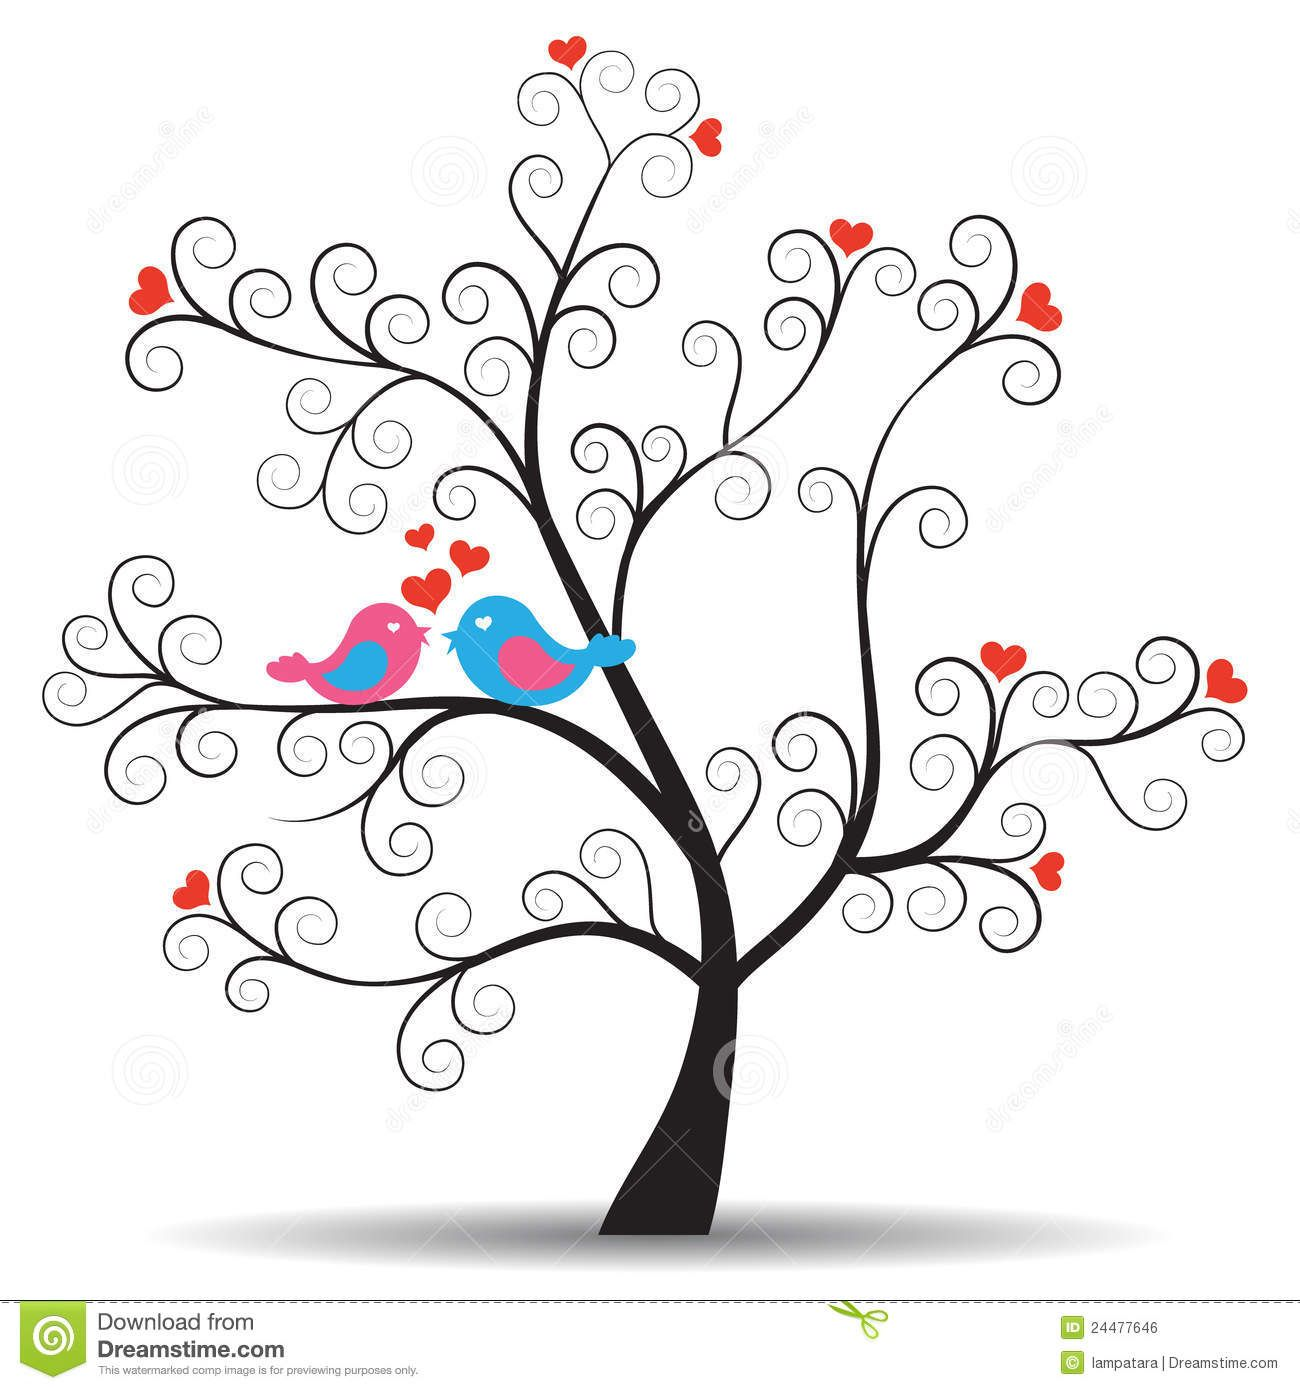 1300x1390 Images Of Tree And Bird Silhouette Romantic Tree With Inlove